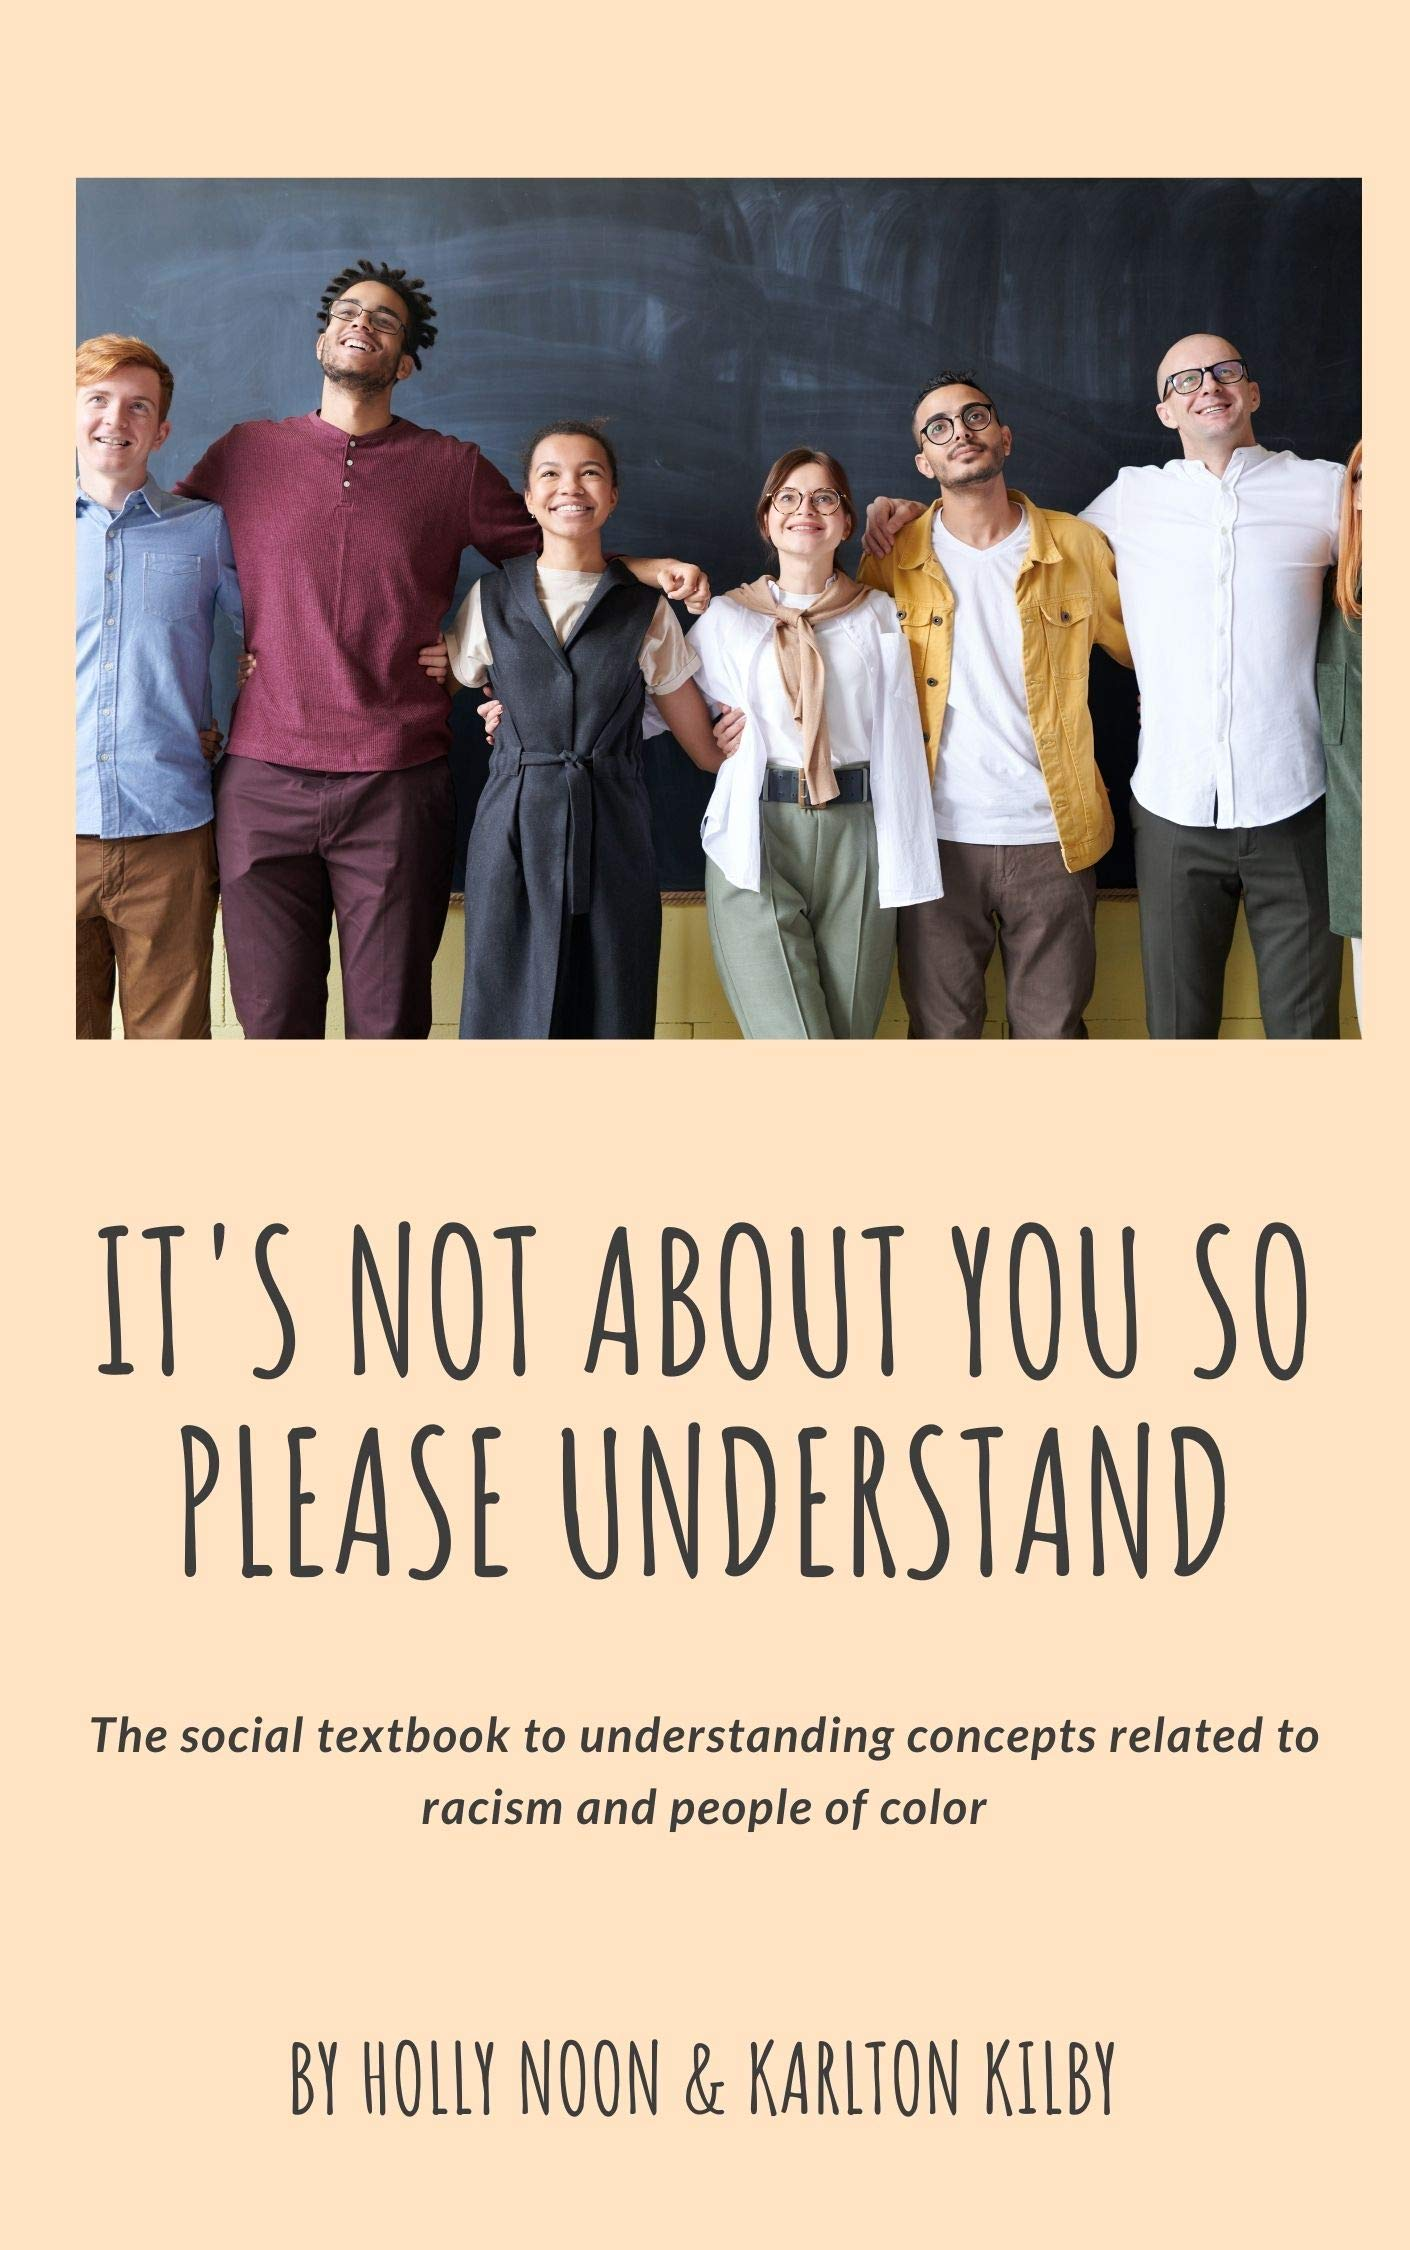 It's Not About You So Please Understand: The social textbook to understanding concepts related to racism and people of color